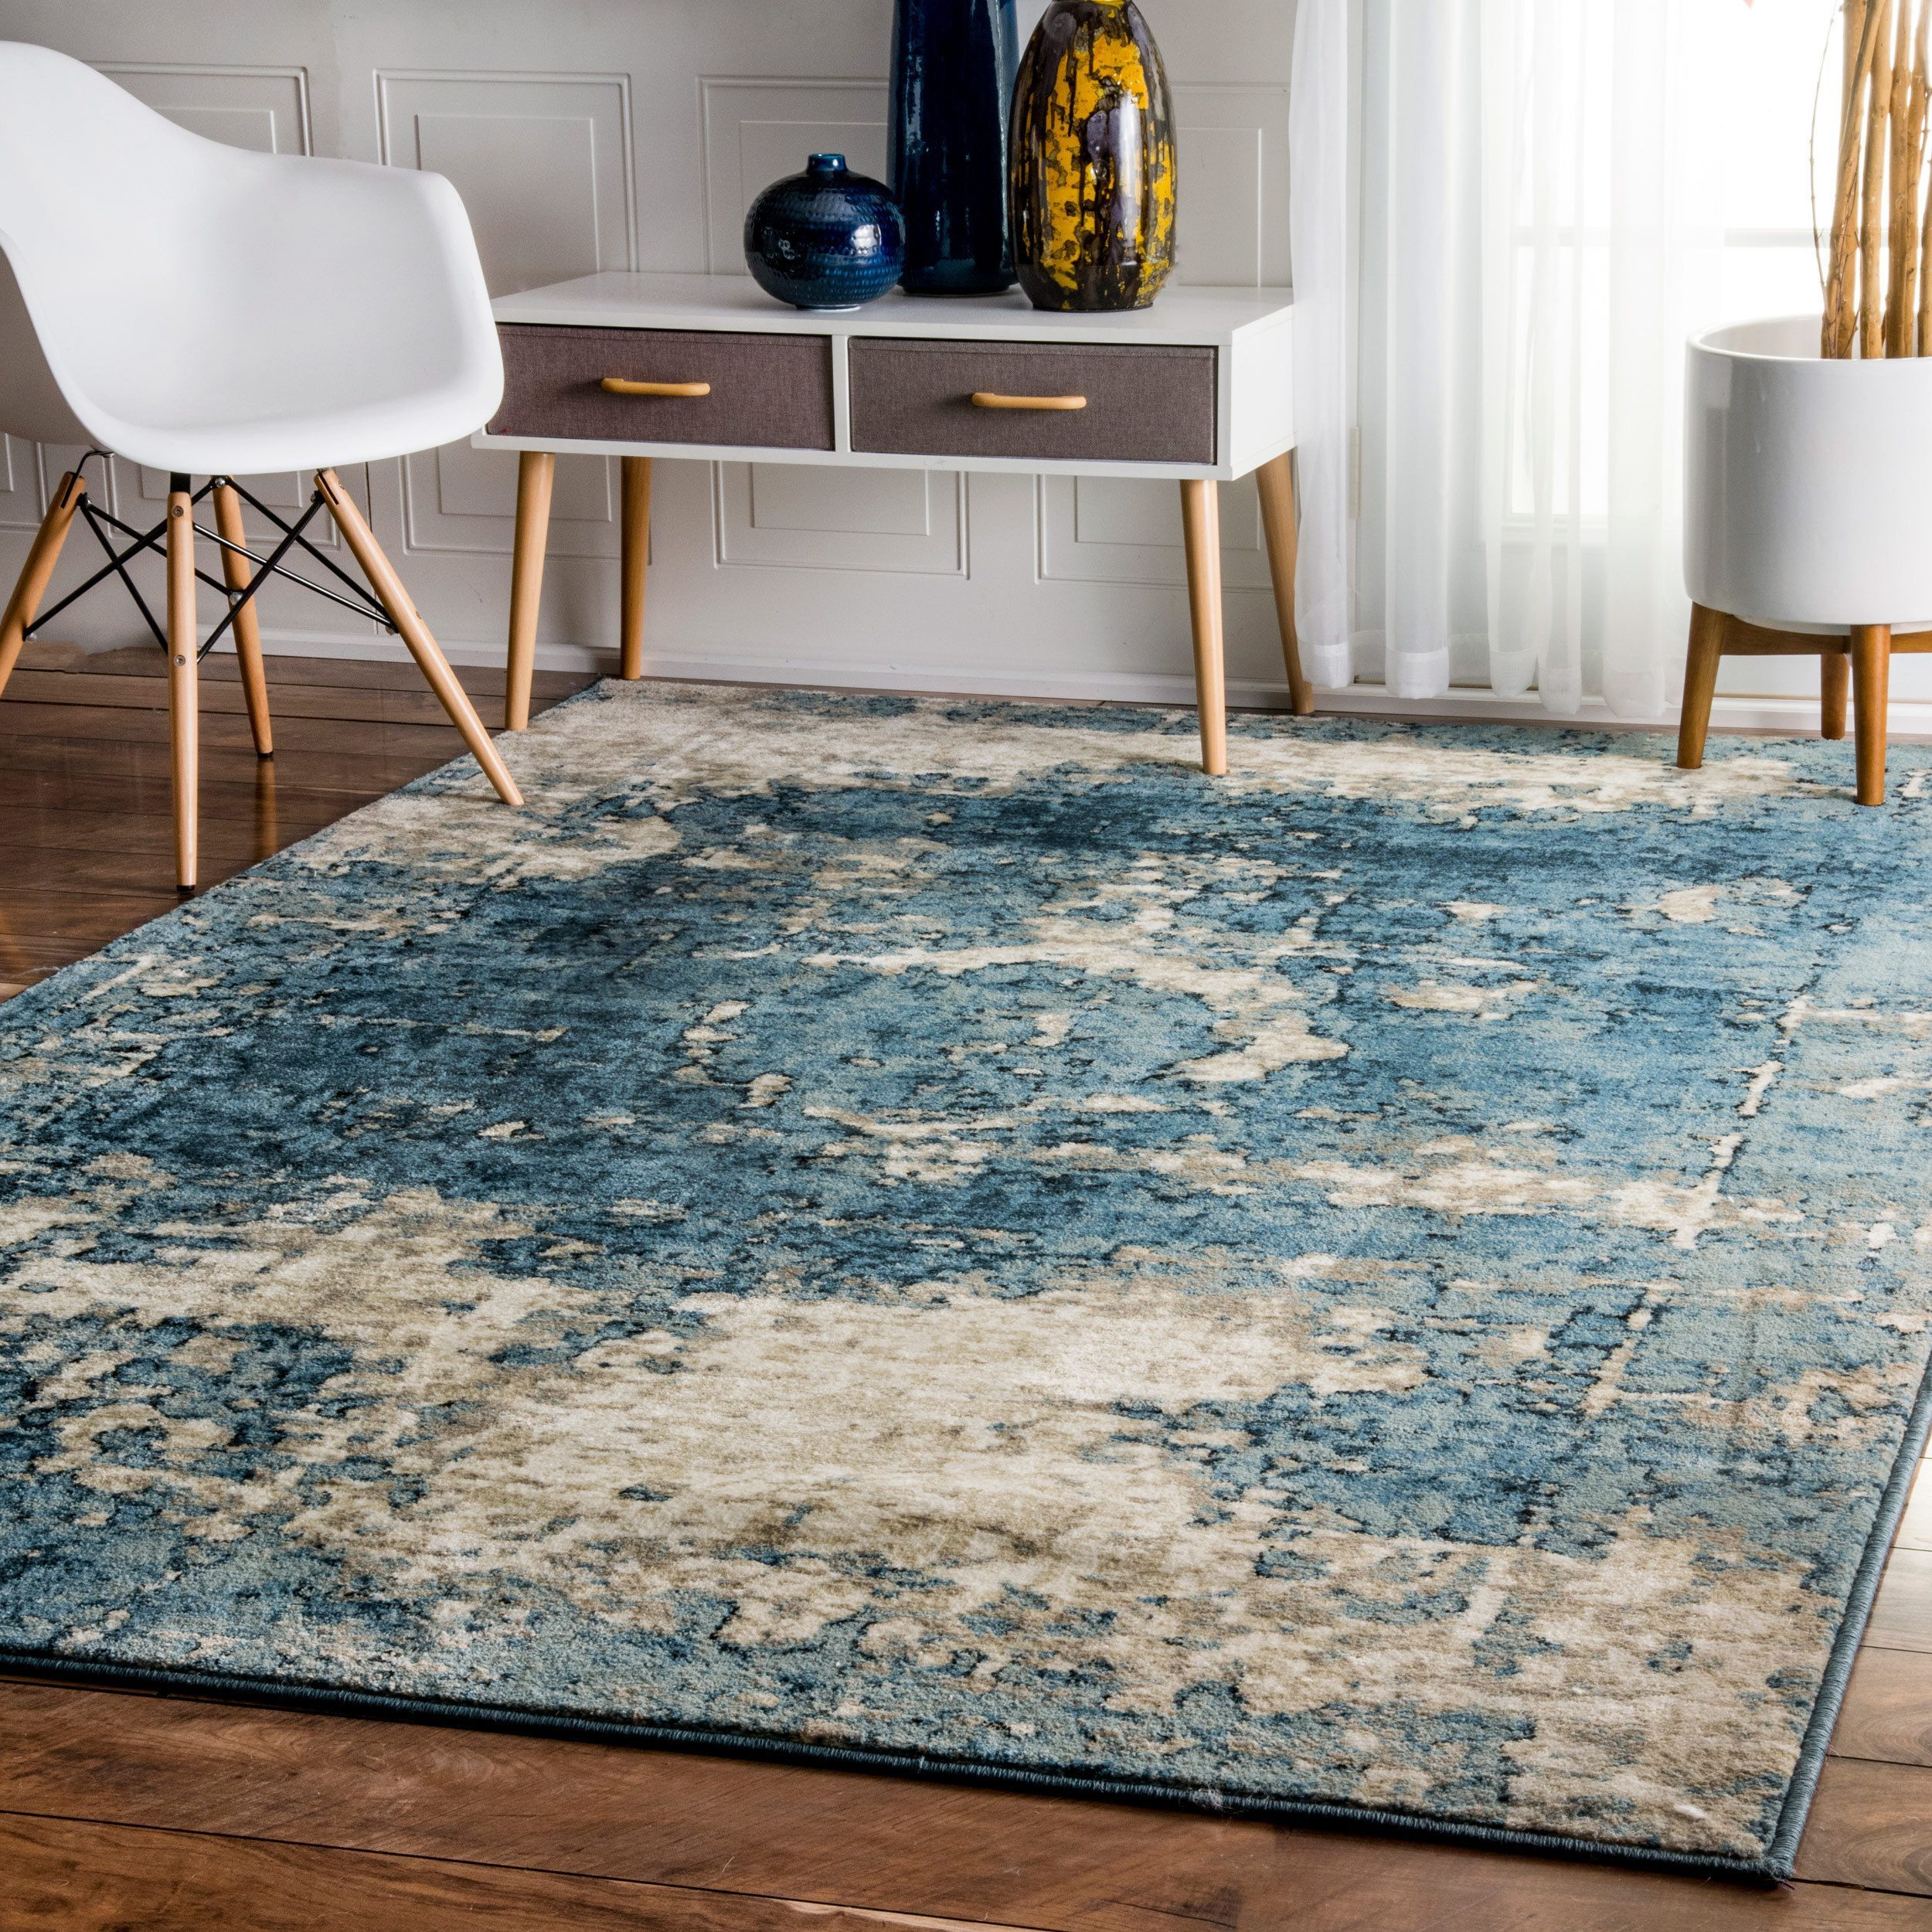 941e9052e678e2 nuLOOM Traditional Vintage Fancy Blue Rug (3' x 5') (Blue), Size 3' x 5'  (Synthetic Fiber, Abstract)